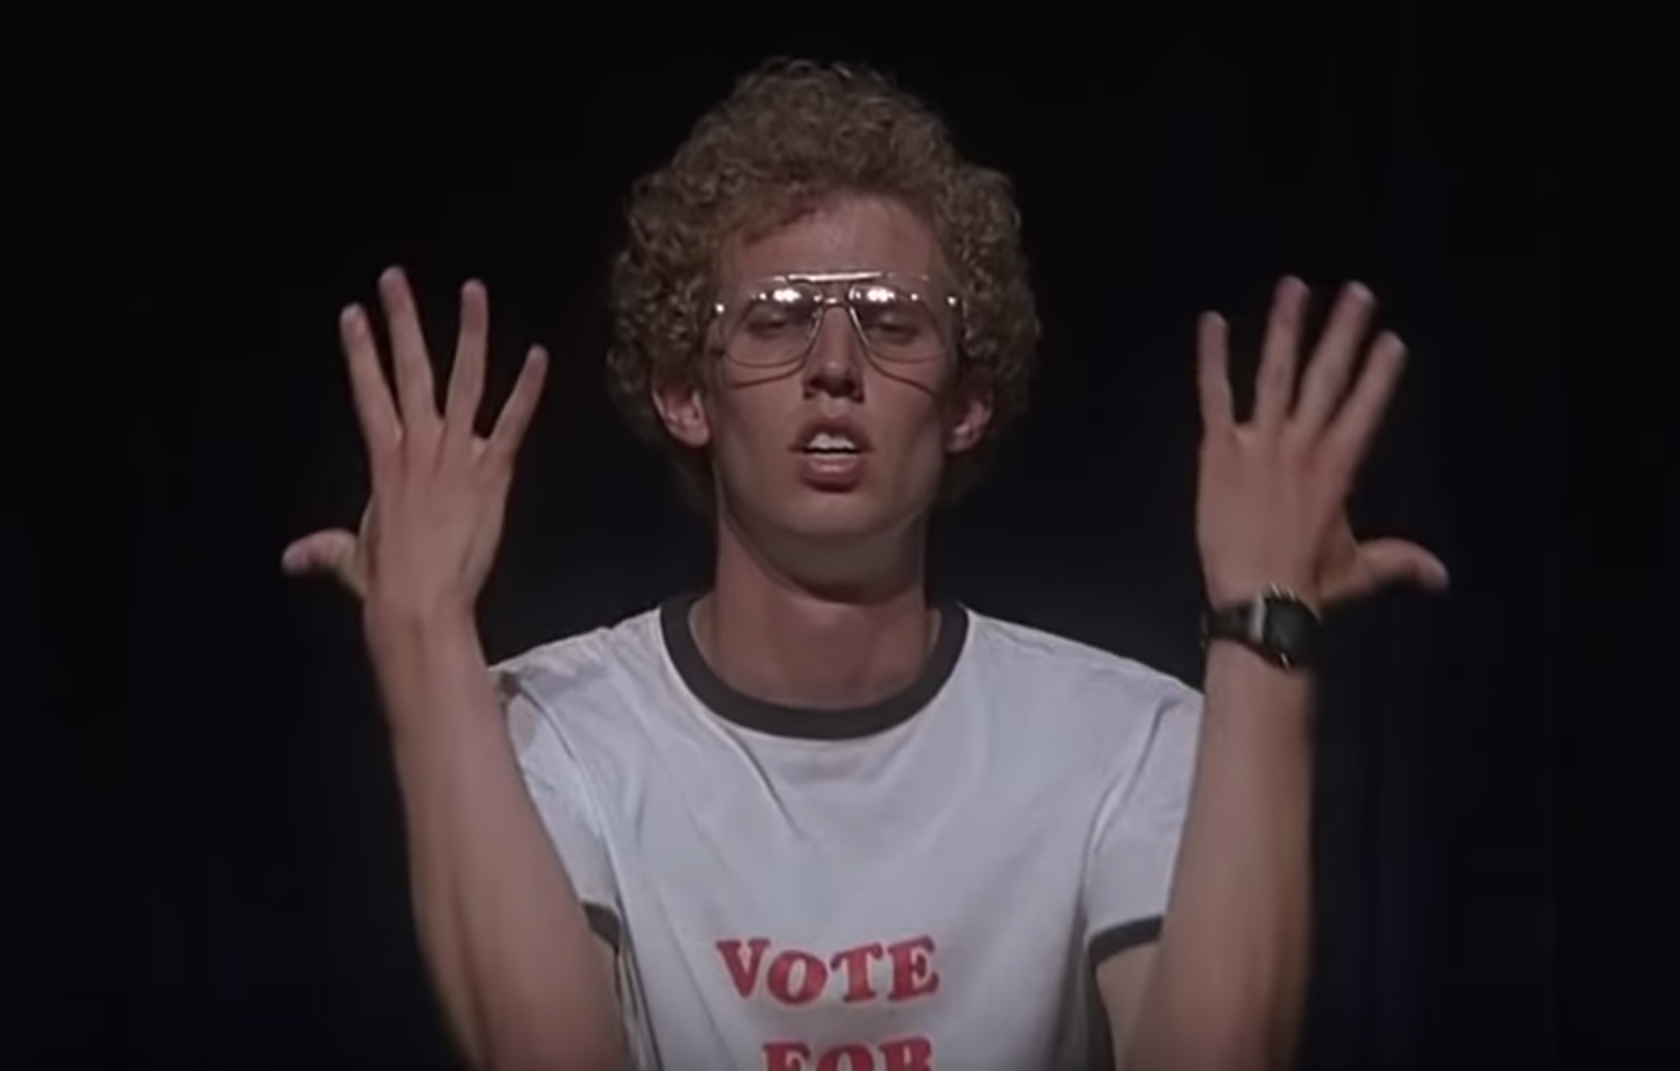 Napoleon Dynamite 2: The Cast Reveals Their Sequel Plans